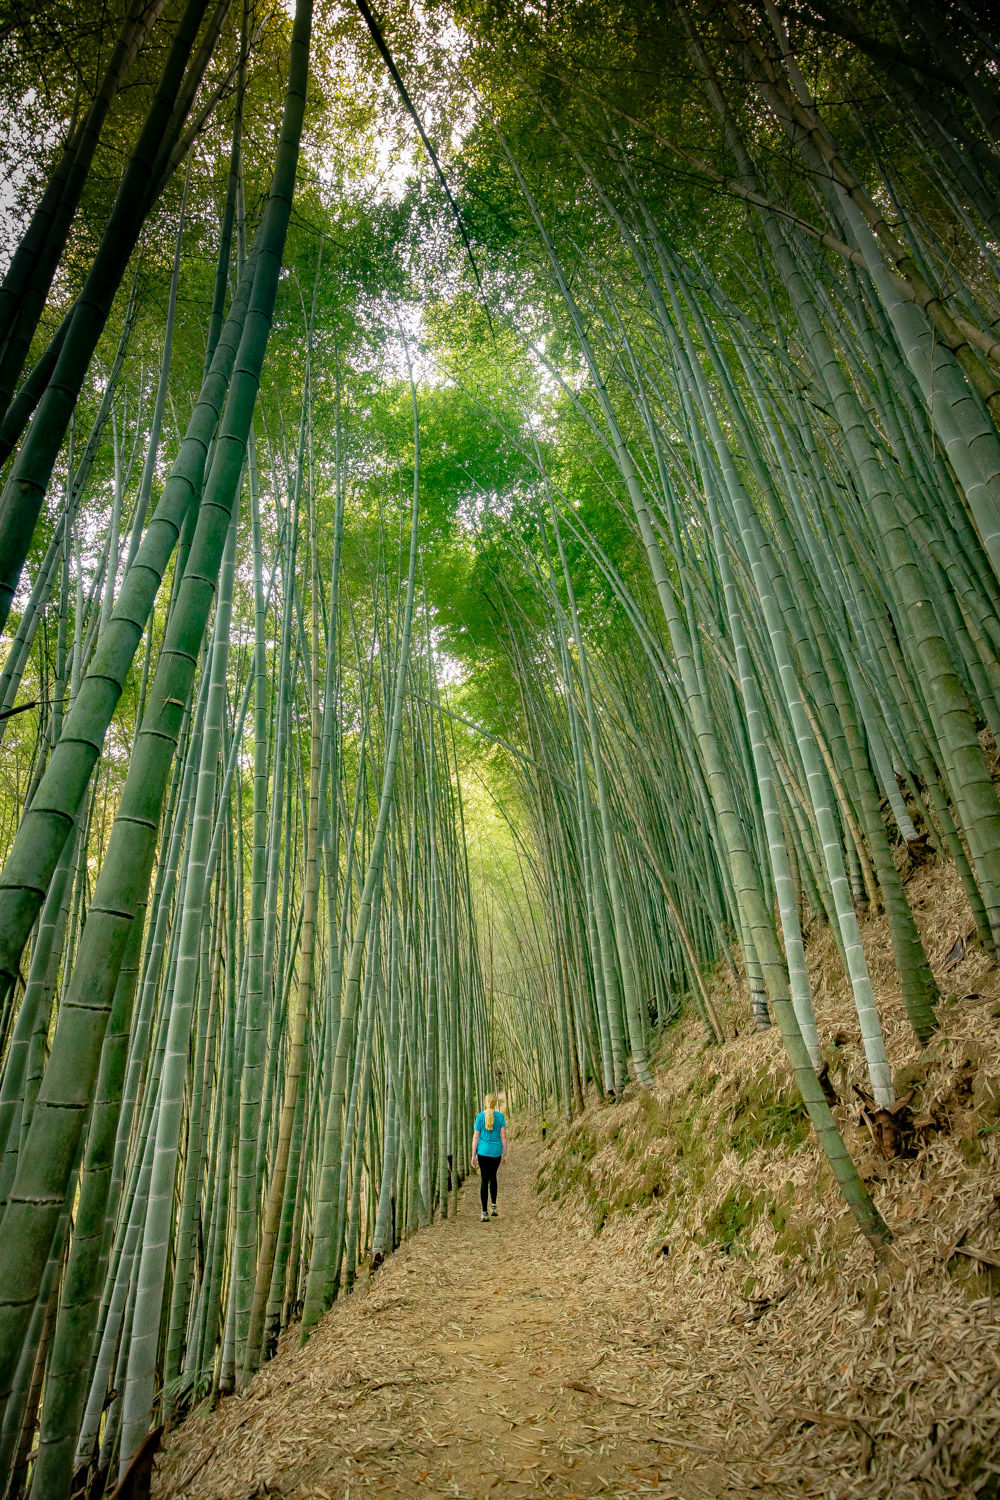 The bamboo forests of the Fenrui Trail